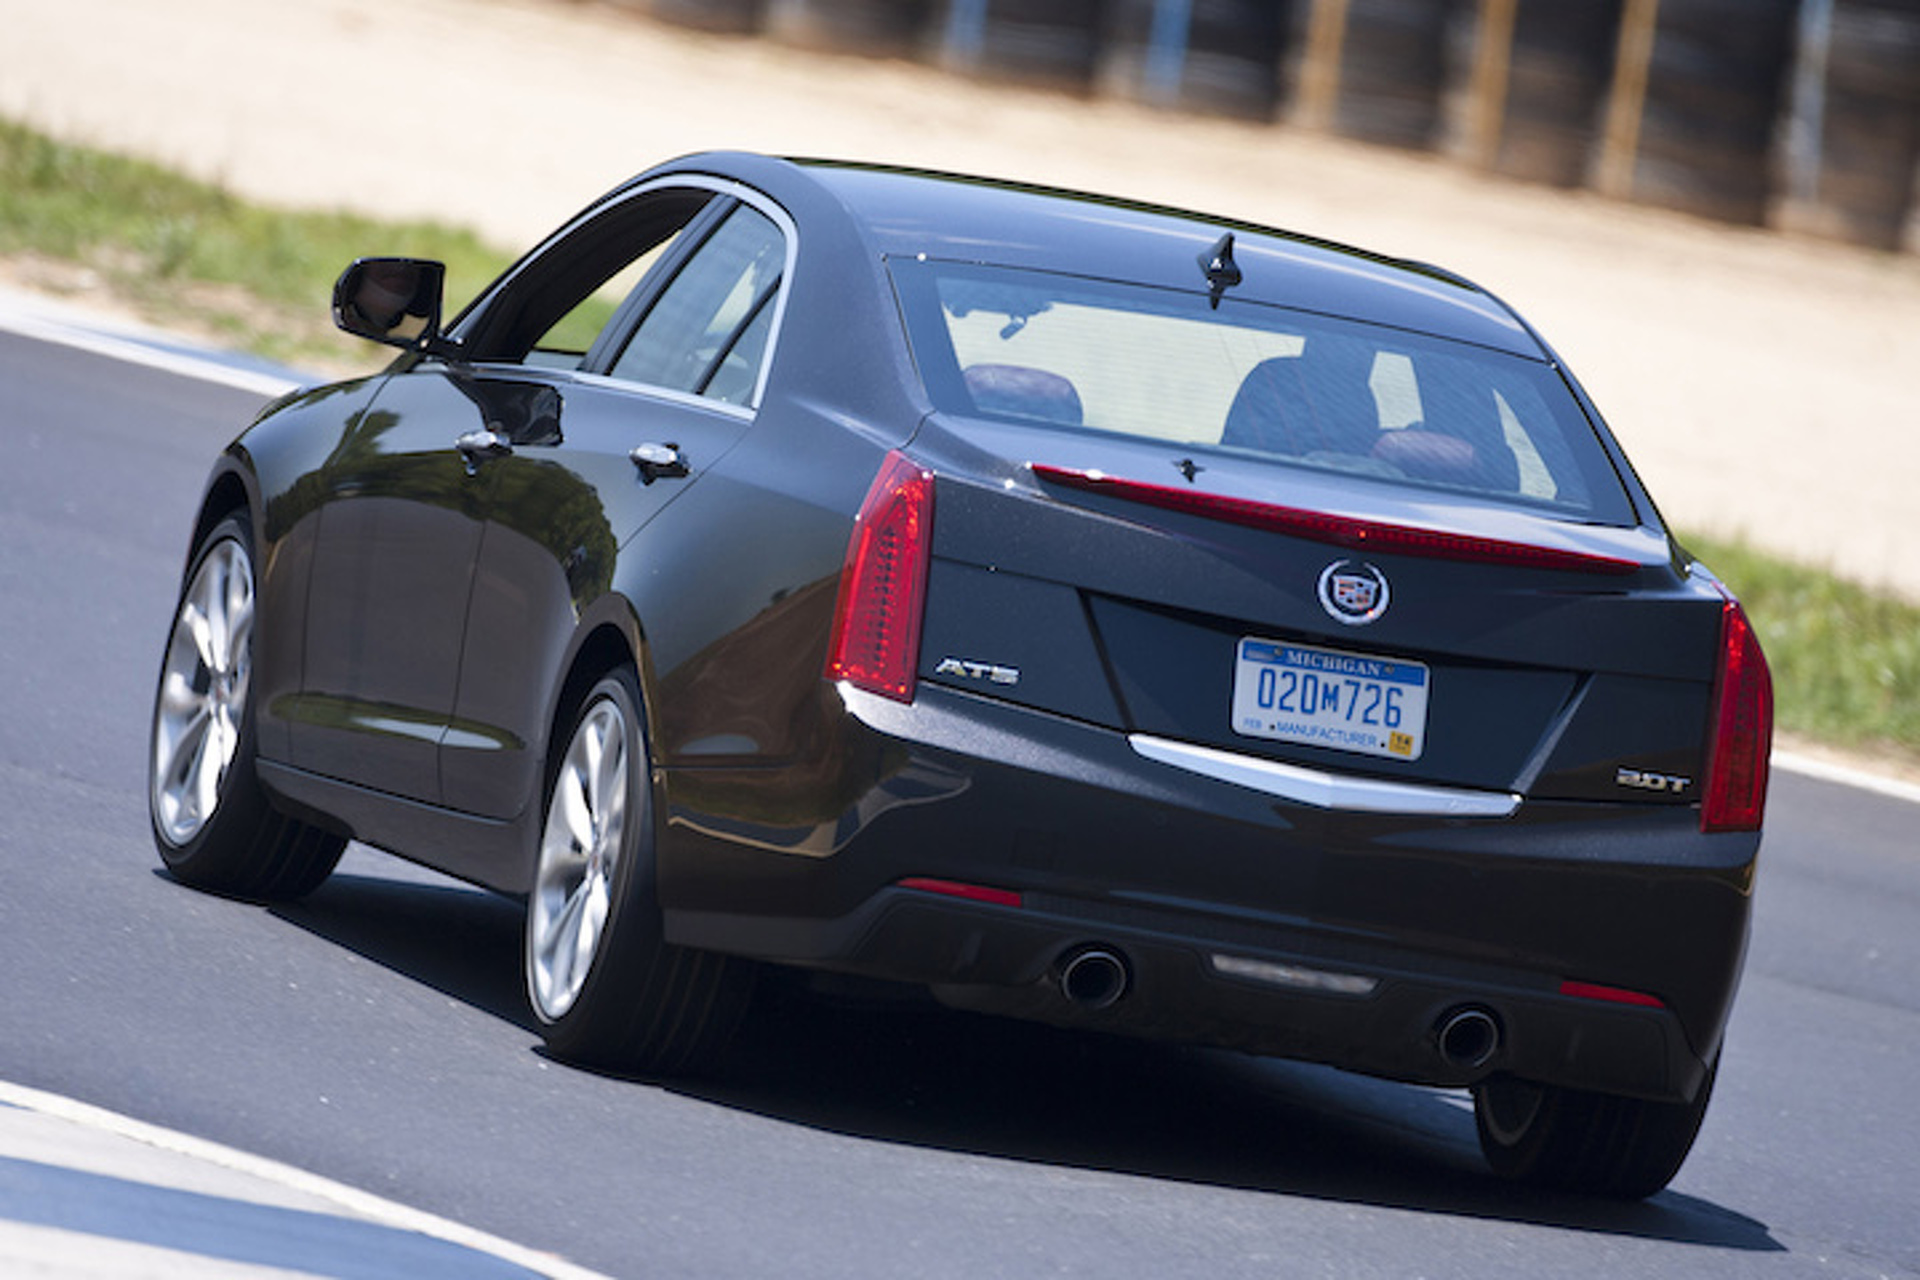 Cadillac Going Smaller With Sub-ATS Compact Offering